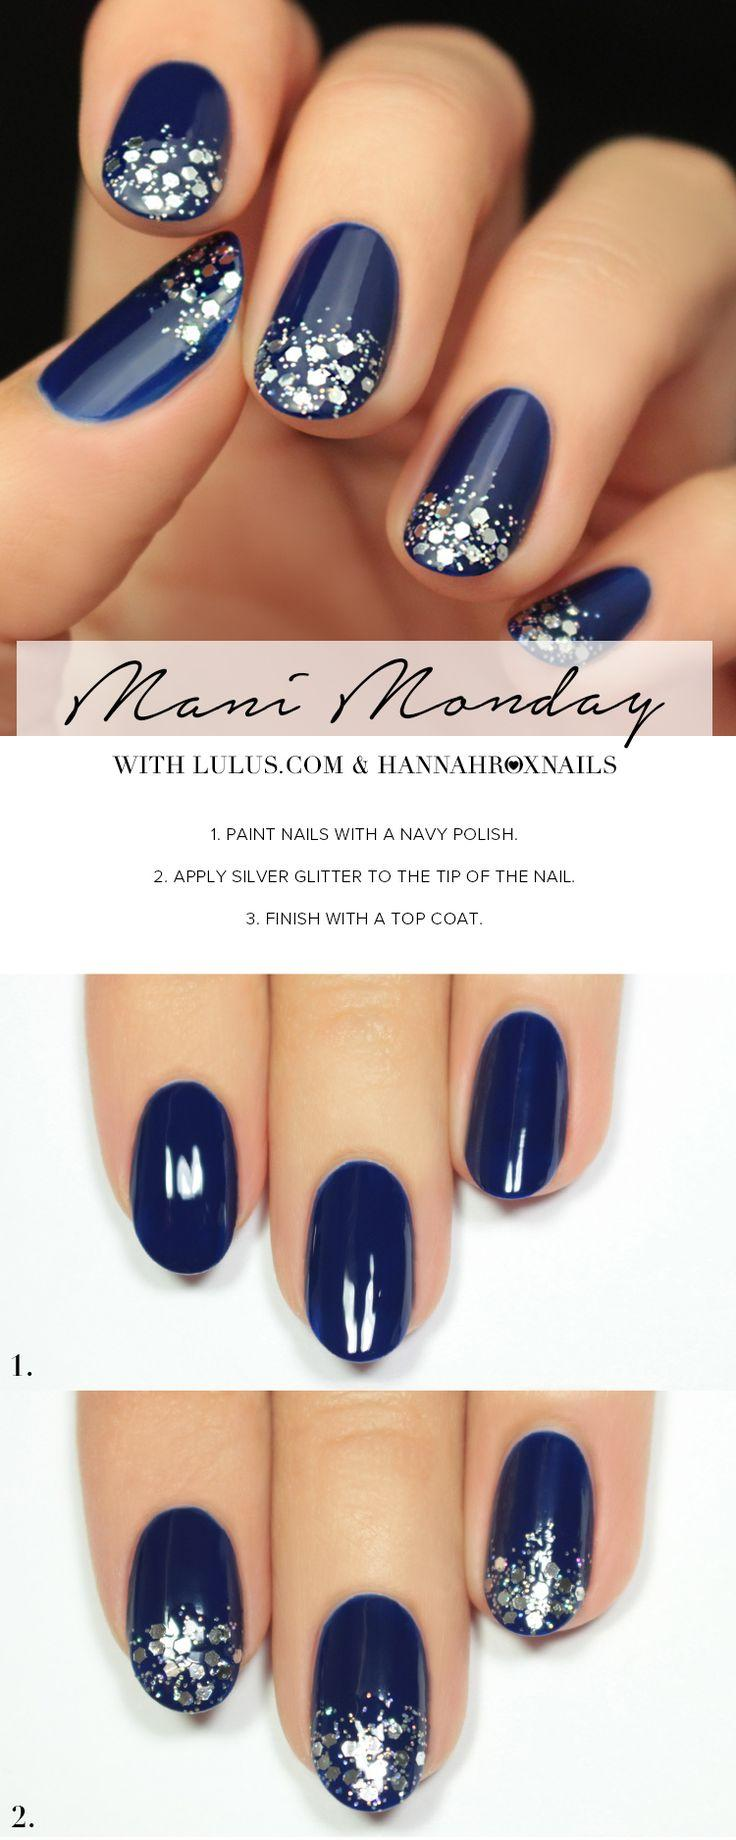 Boda - Mani Monday: Navy Blue And Silver Glitter Nail Tutorial (Lulus.com Fashion Blog)